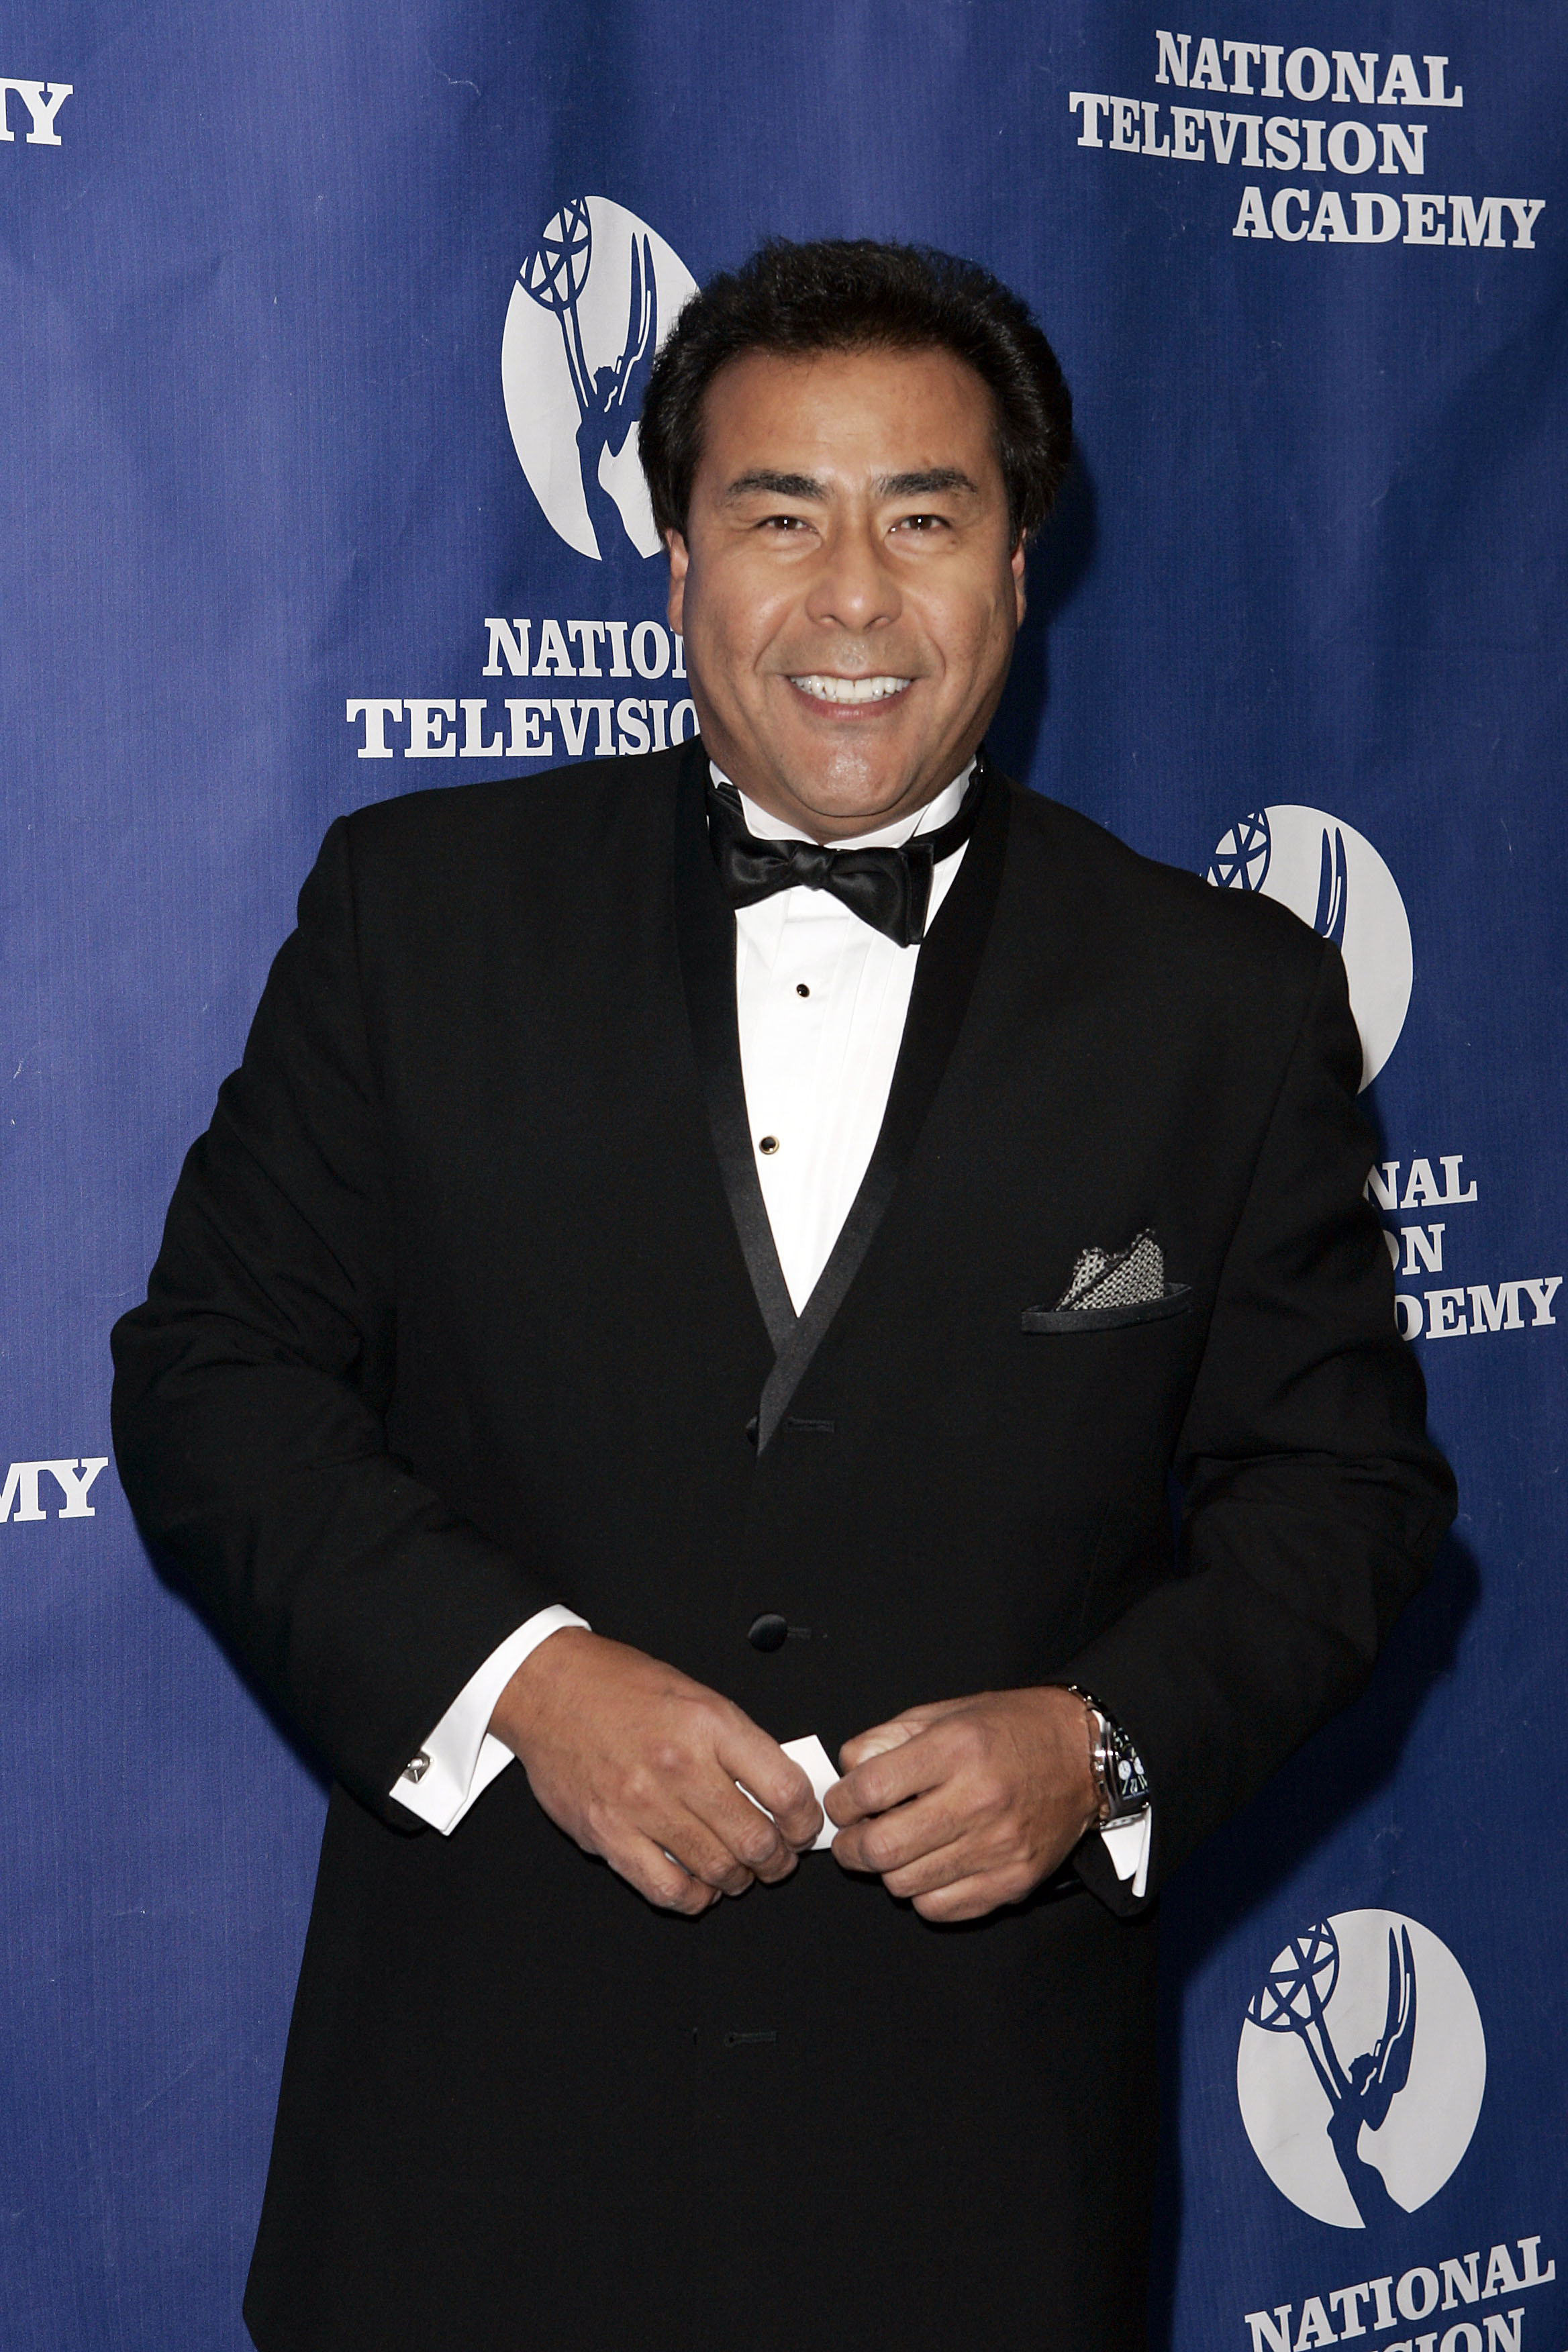 TV personality John Quinones arrives at the National Television Academy Honors on October 20, 2005, in New York City (Getty Images)